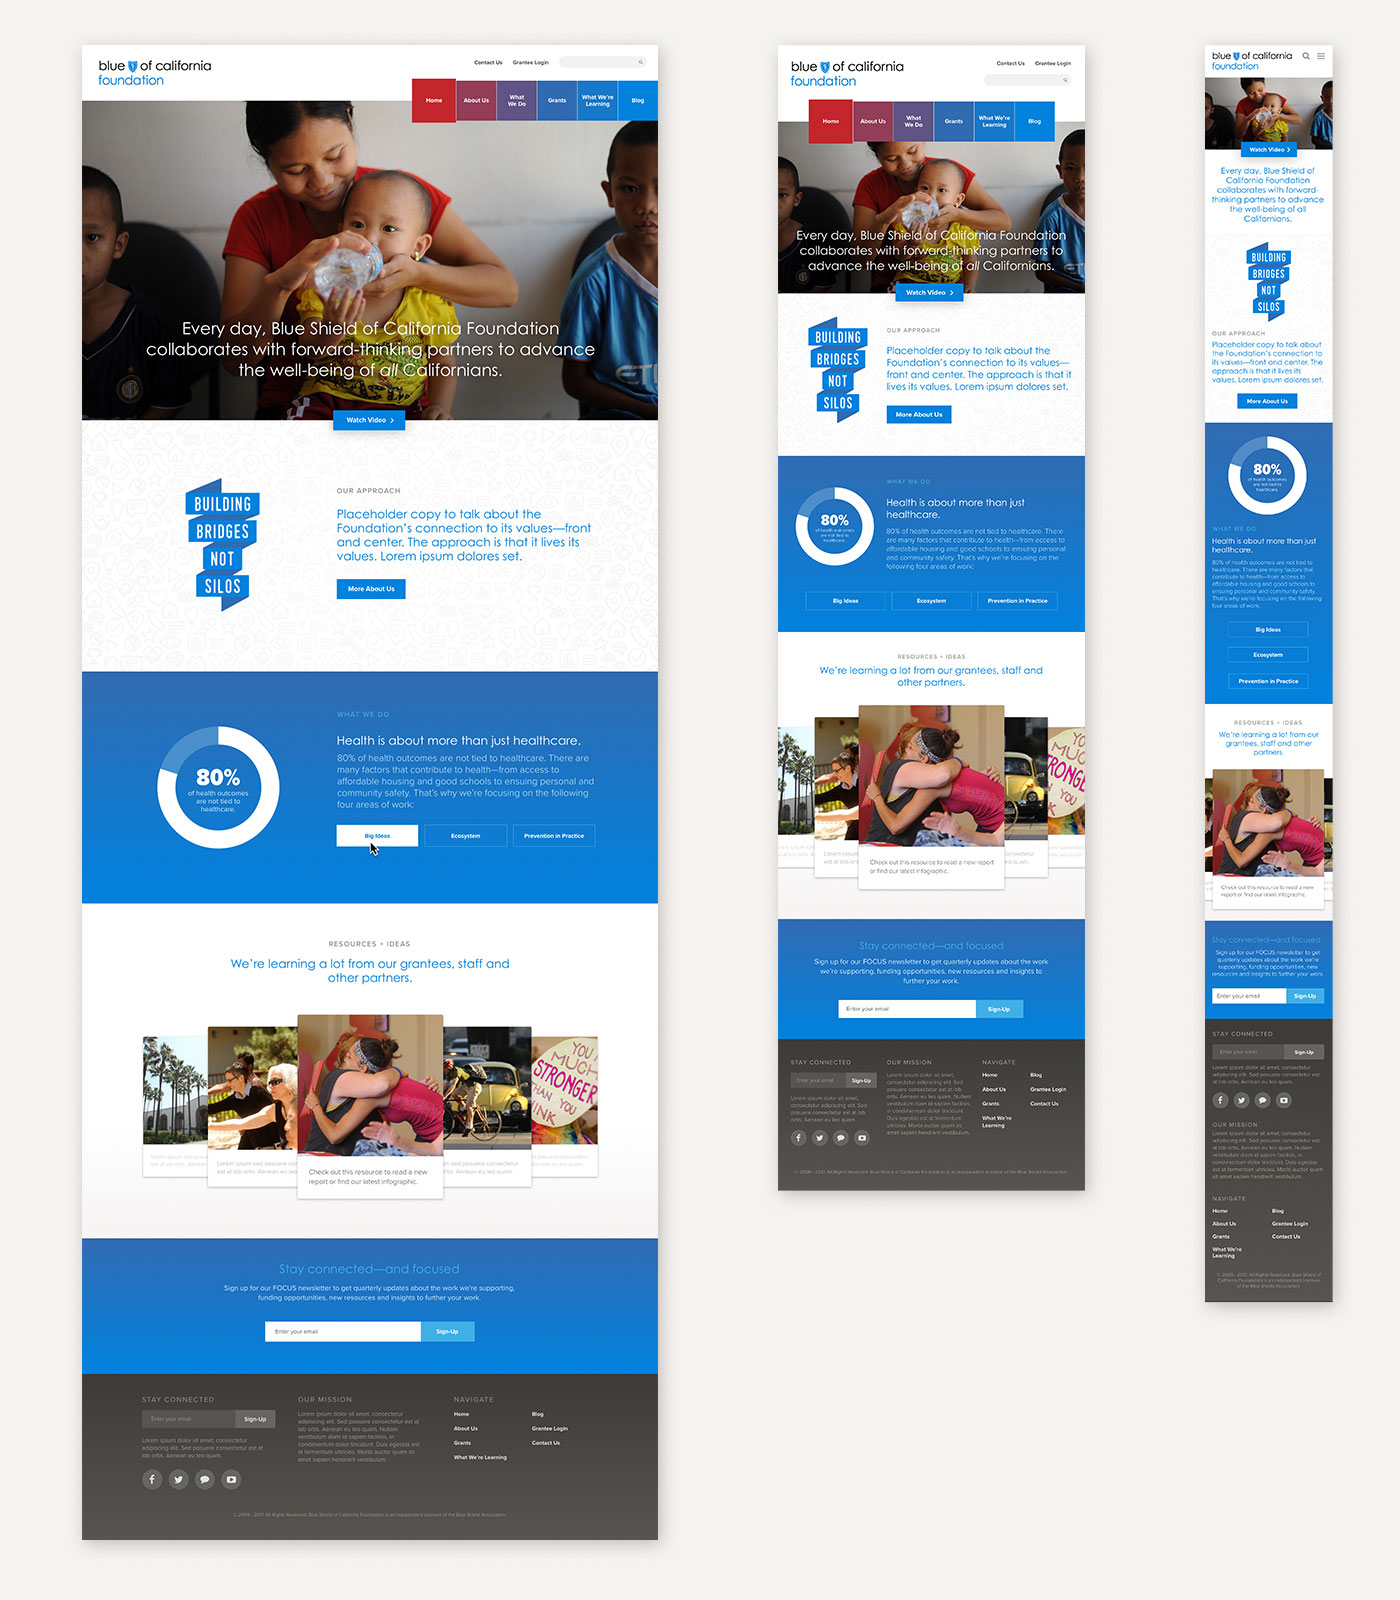 Blue Shield of California Foundation Website Design Homepage Desktop Tablet Mobile